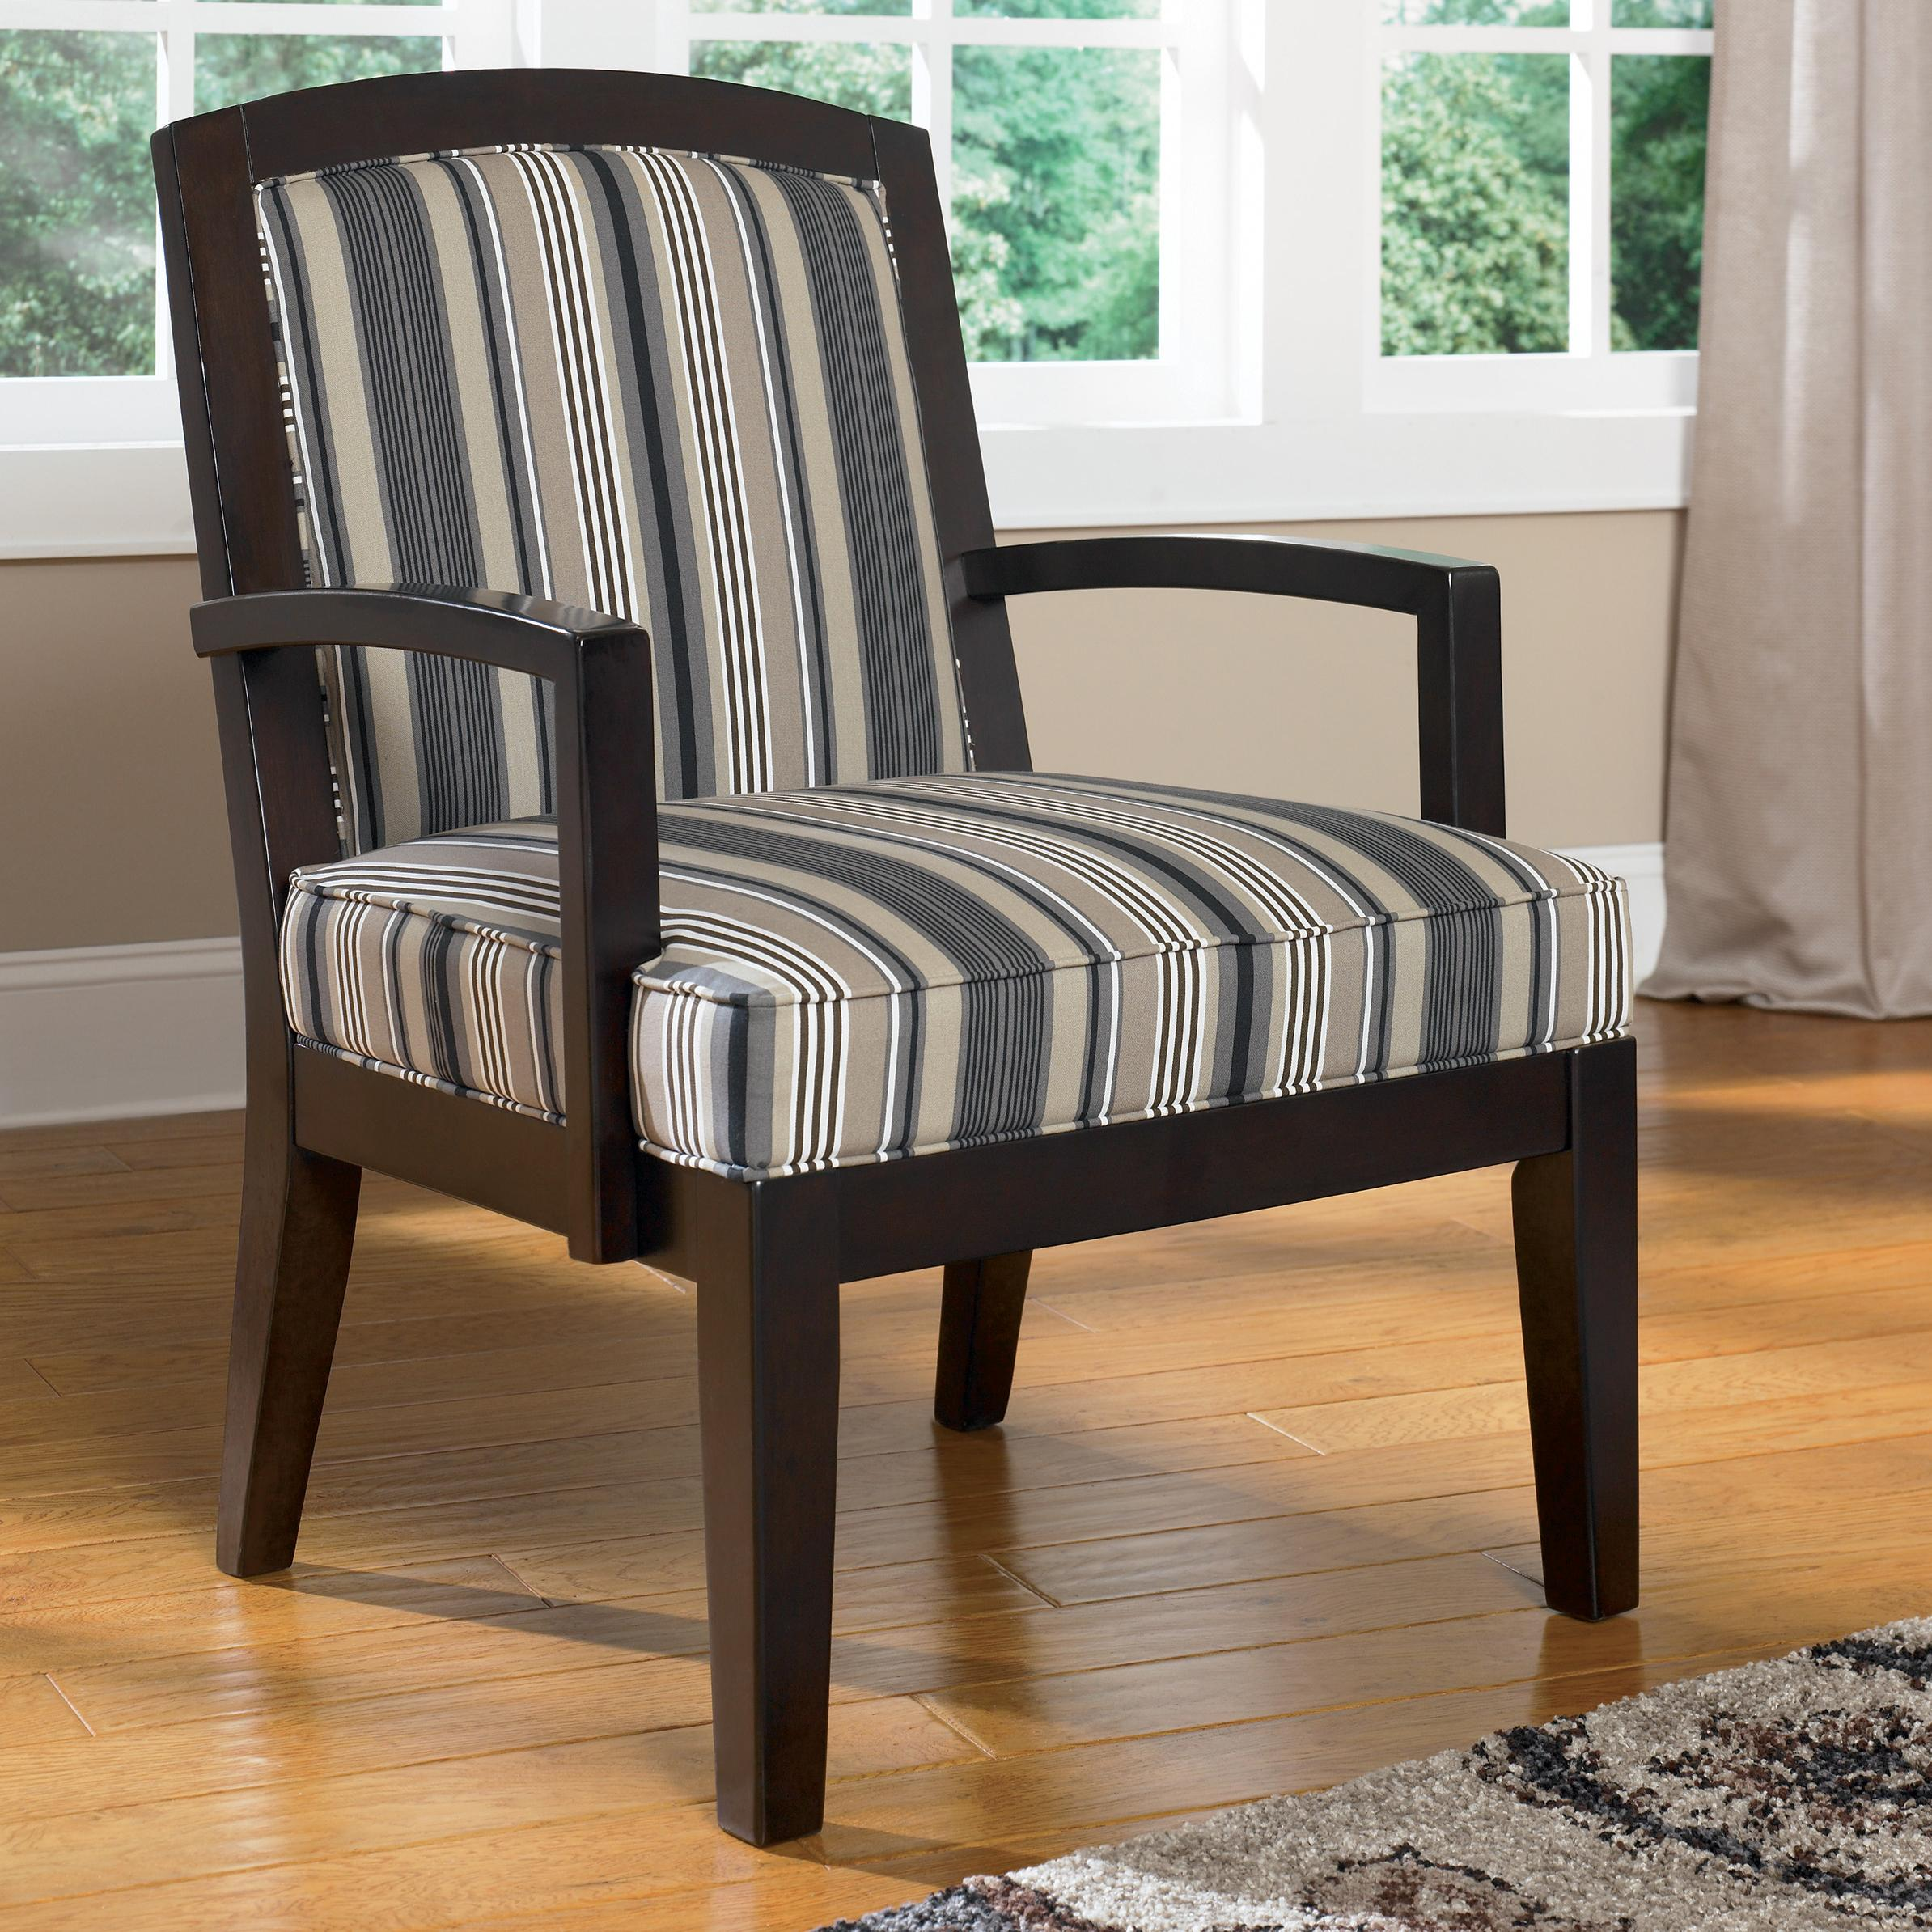 Ashley Furniture Yvette - Steel Showood Accent Chair w/ Wood Frame - AHFA - Exposed Wood Chair Dealer Locator & Ashley Furniture Yvette - Steel Showood Accent Chair w/ Wood Frame ...